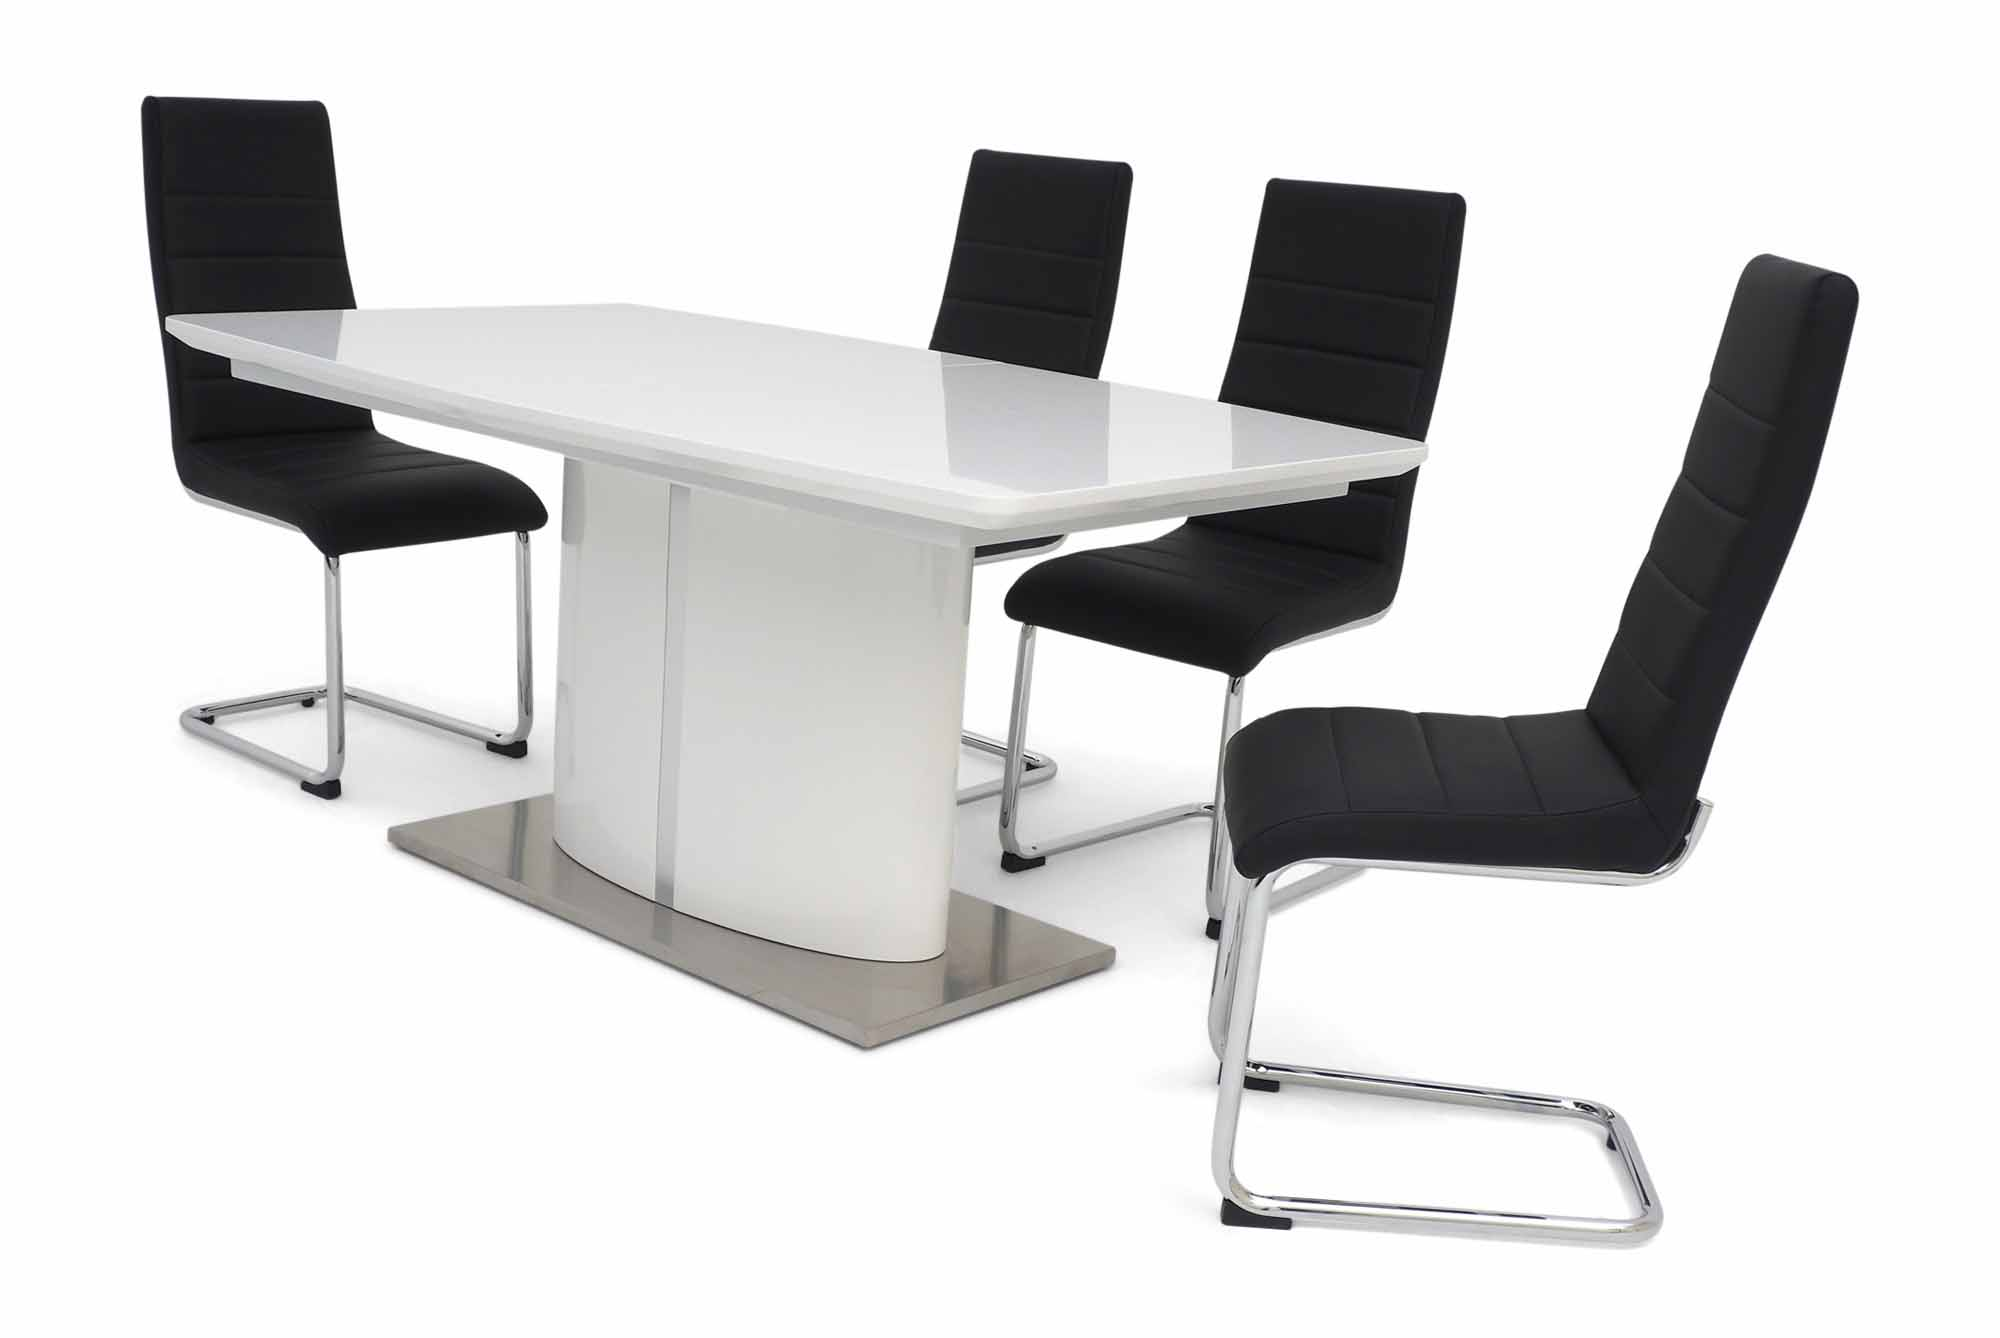 https://www.firstfurniture.co.uk/pub/media/catalog/product/f/l/flavio_white_table_hugo_chair_black_close_1_side.jpg